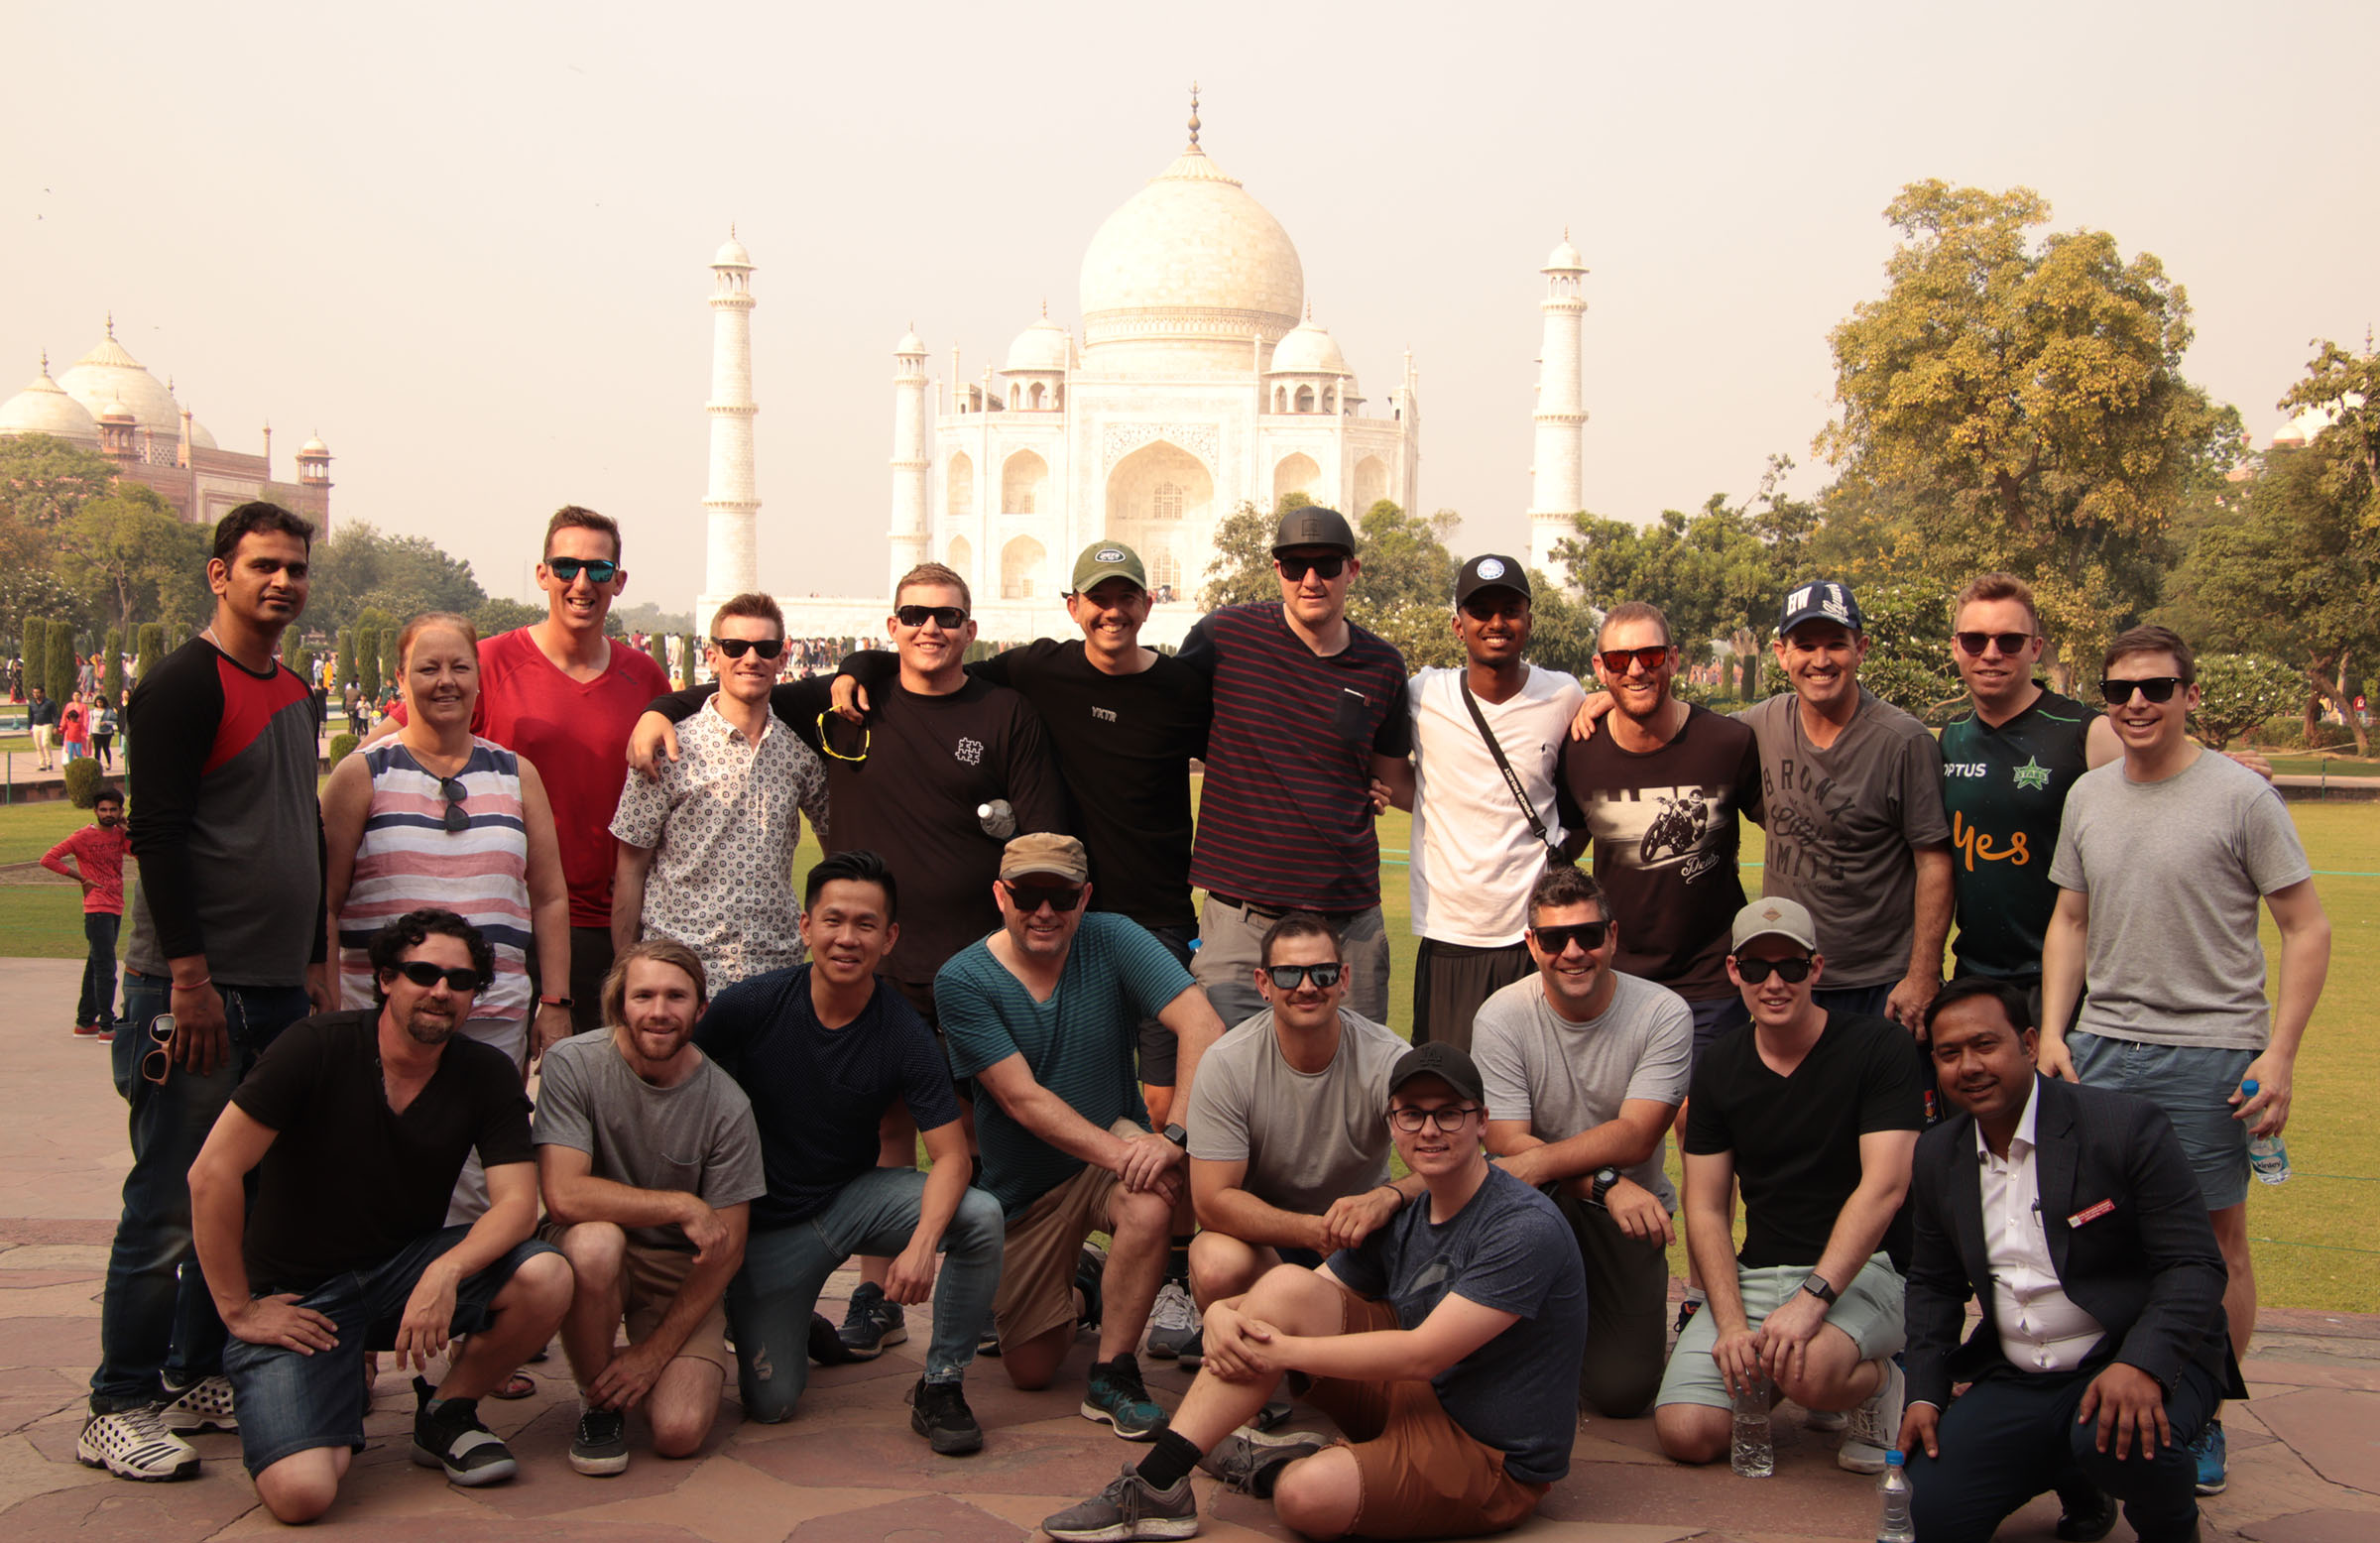 The squad takes in the majesty of the Taj Mahal